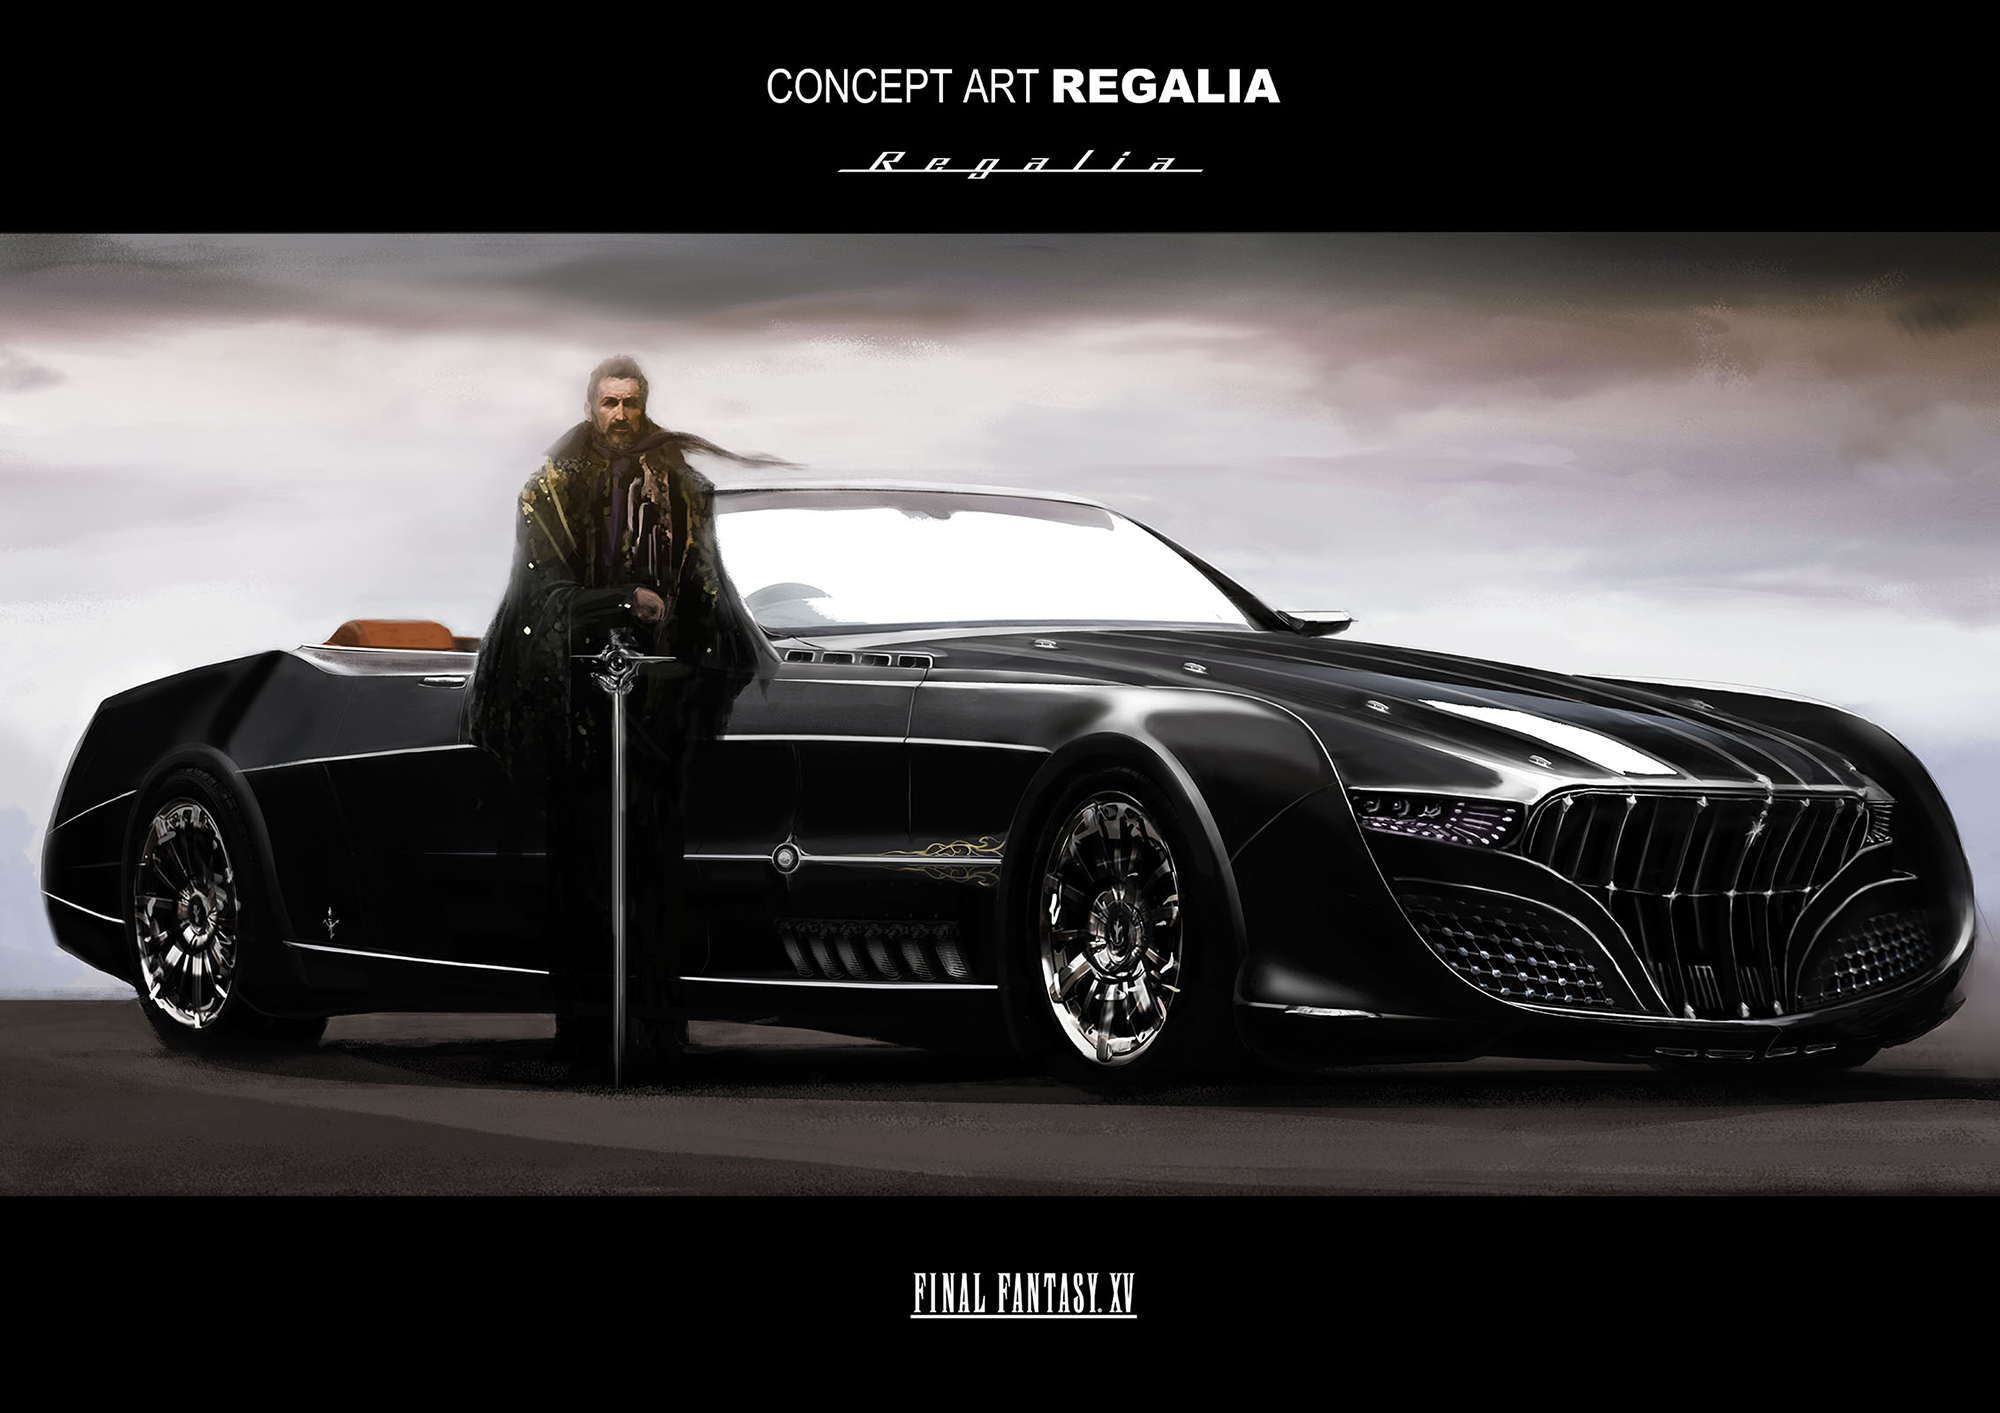 Final Fantasy XV Regalia Concept Art 1